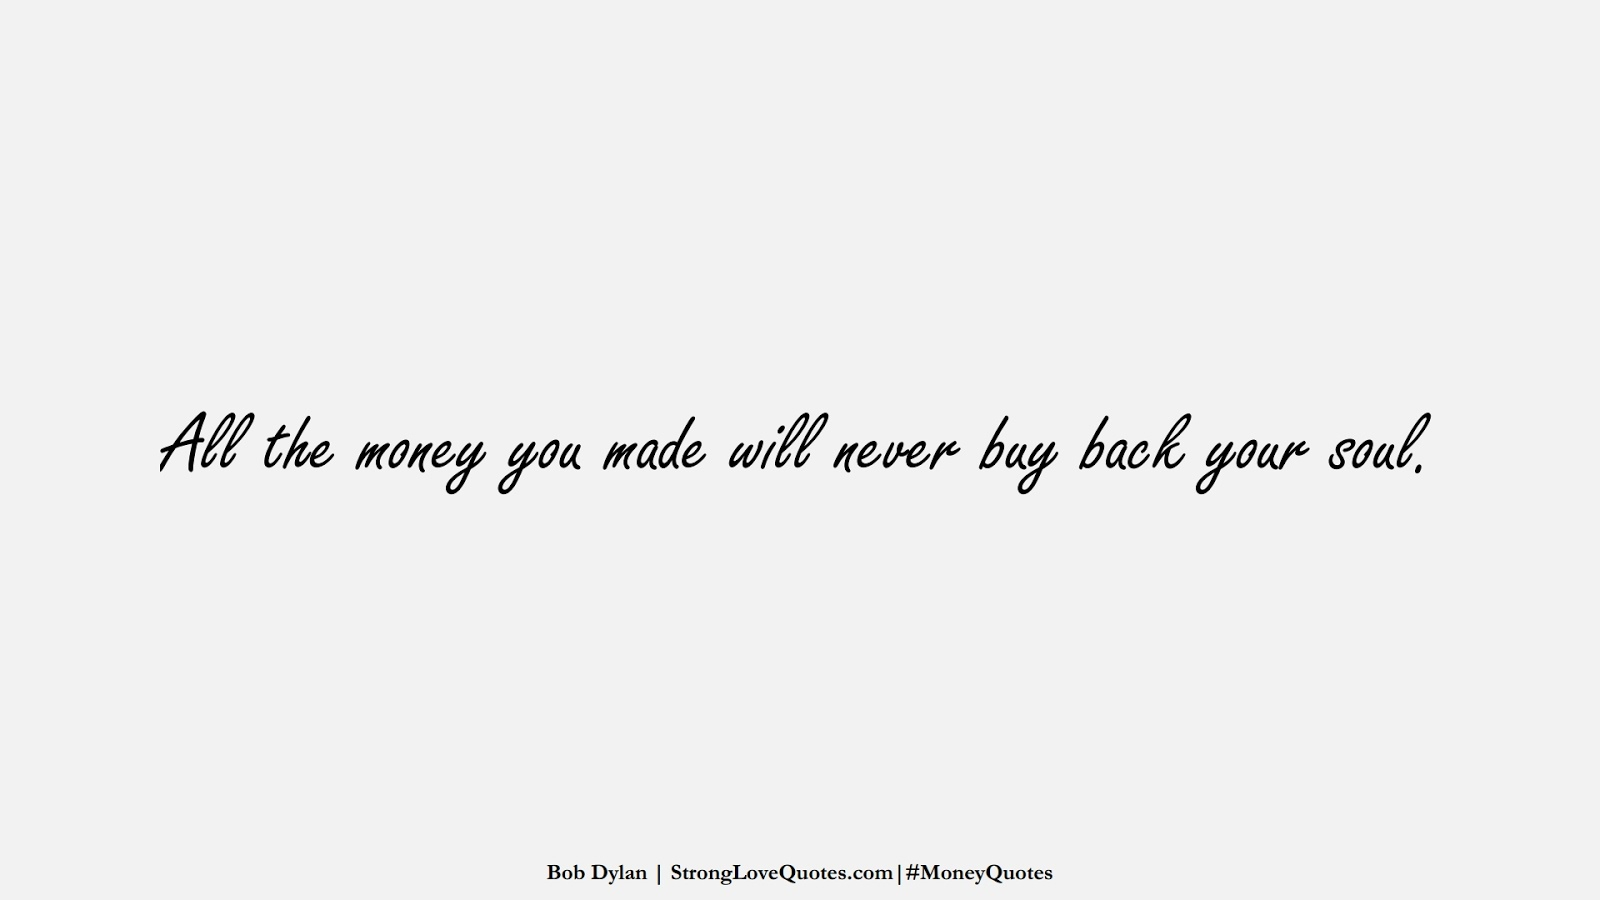 All the money you made will never buy back your soul. (Bob Dylan);  #MoneyQuotes